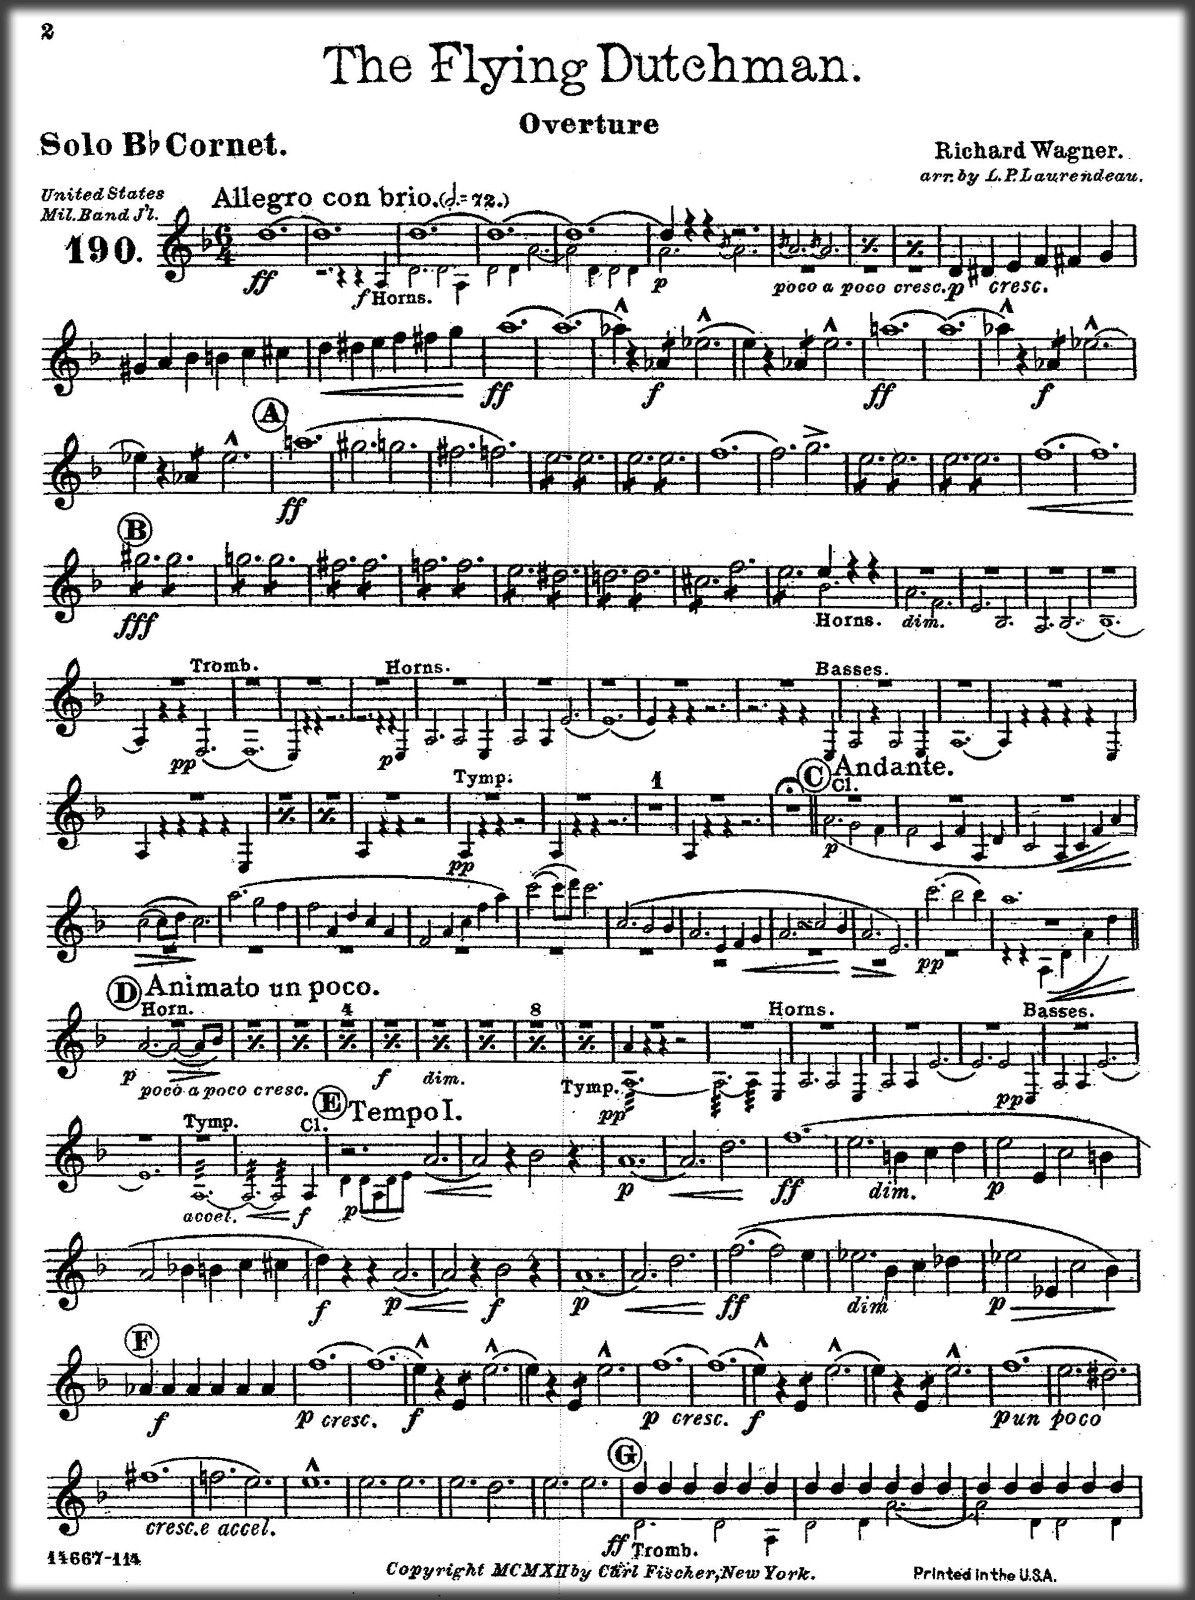 Marching Band Sheet Music - The Flying Dutchman Overture by Richard Wagner  EBOOK PDF